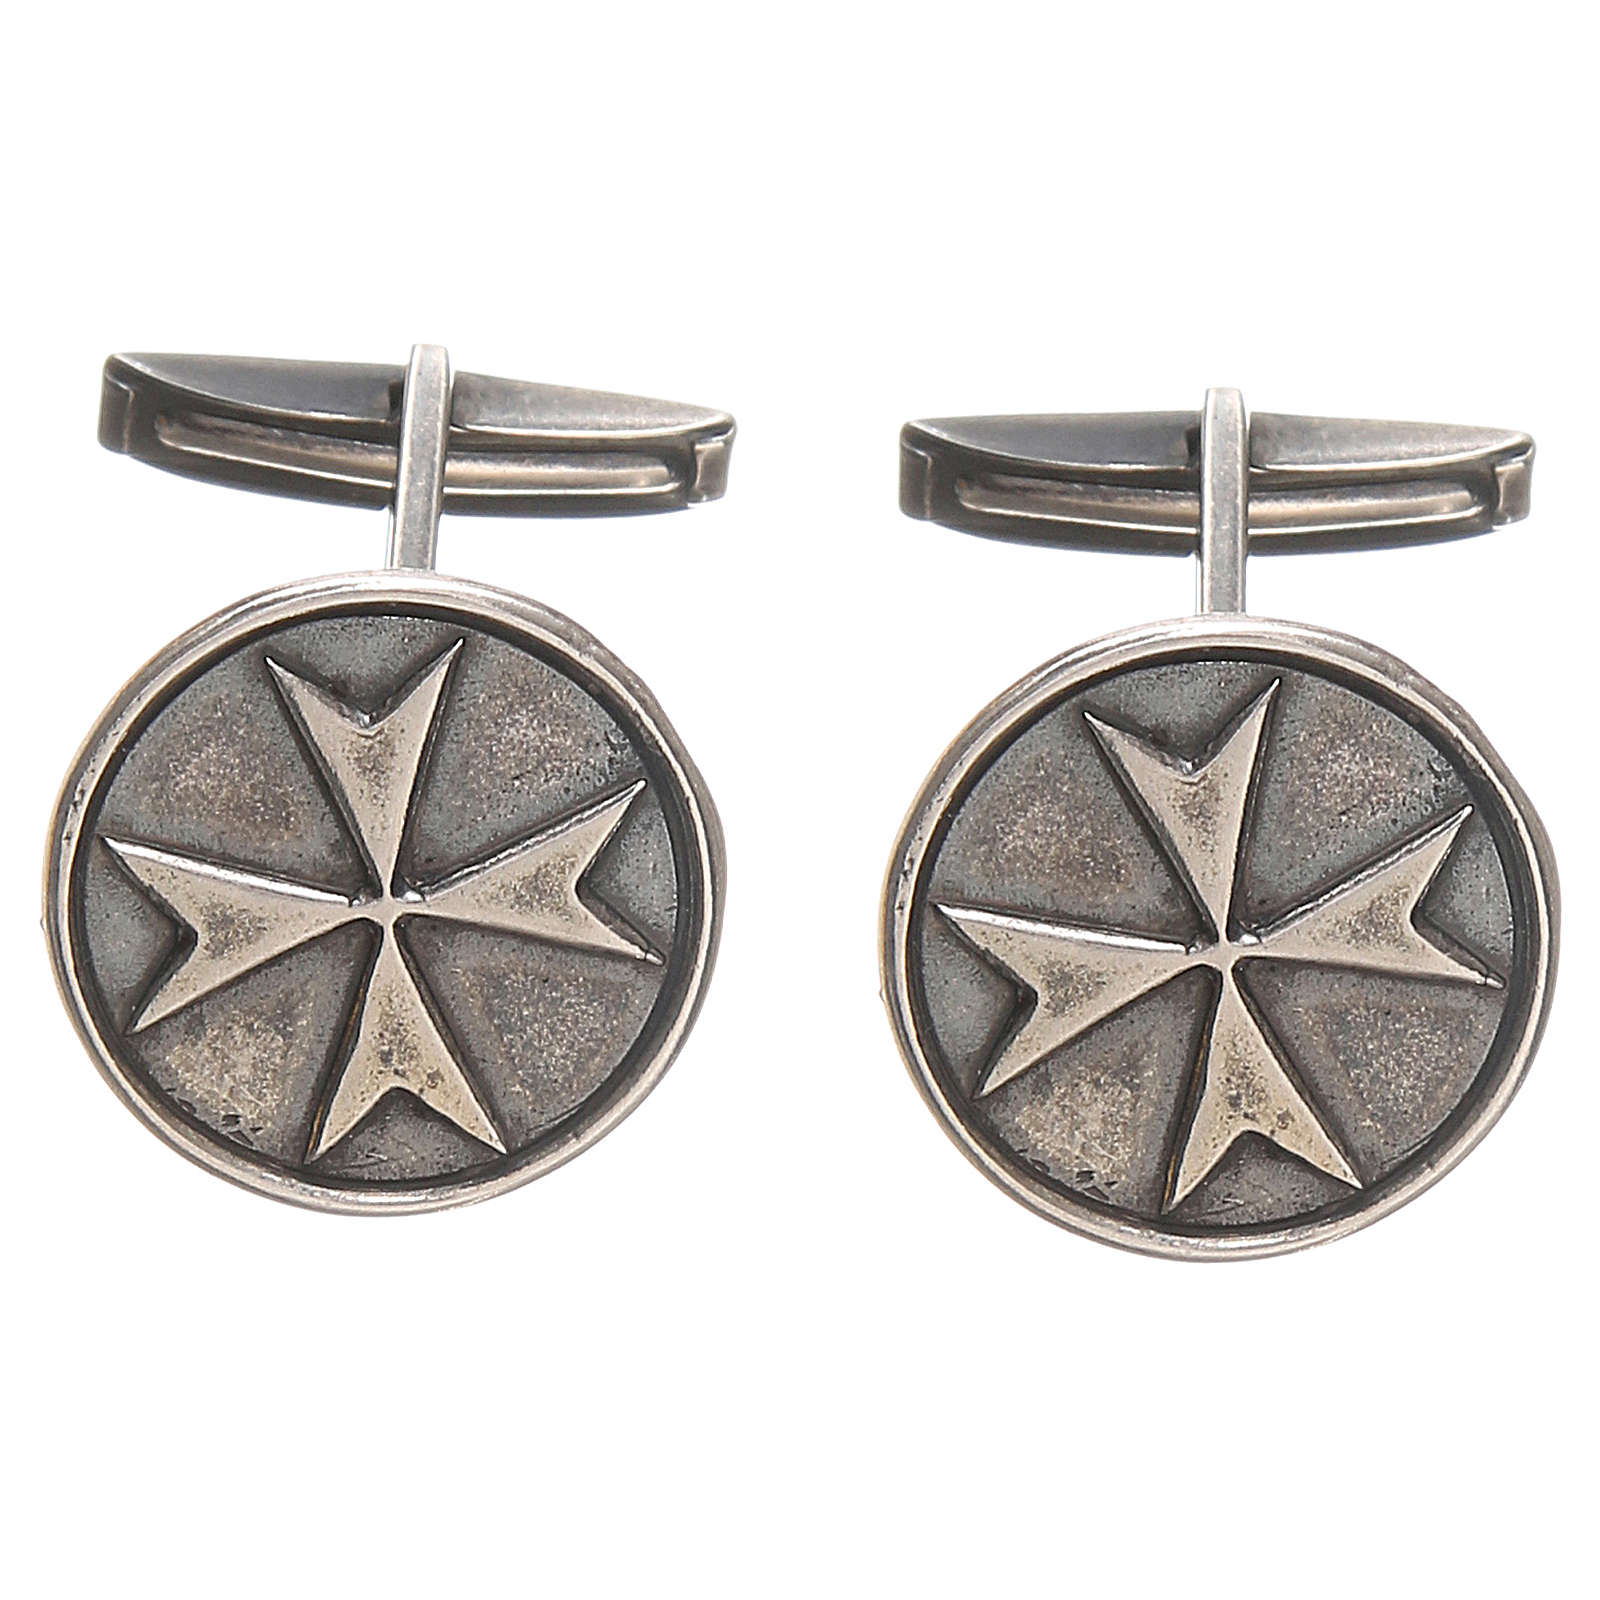 Maltese Cross Cufflinks in burnished 925 Silver 4